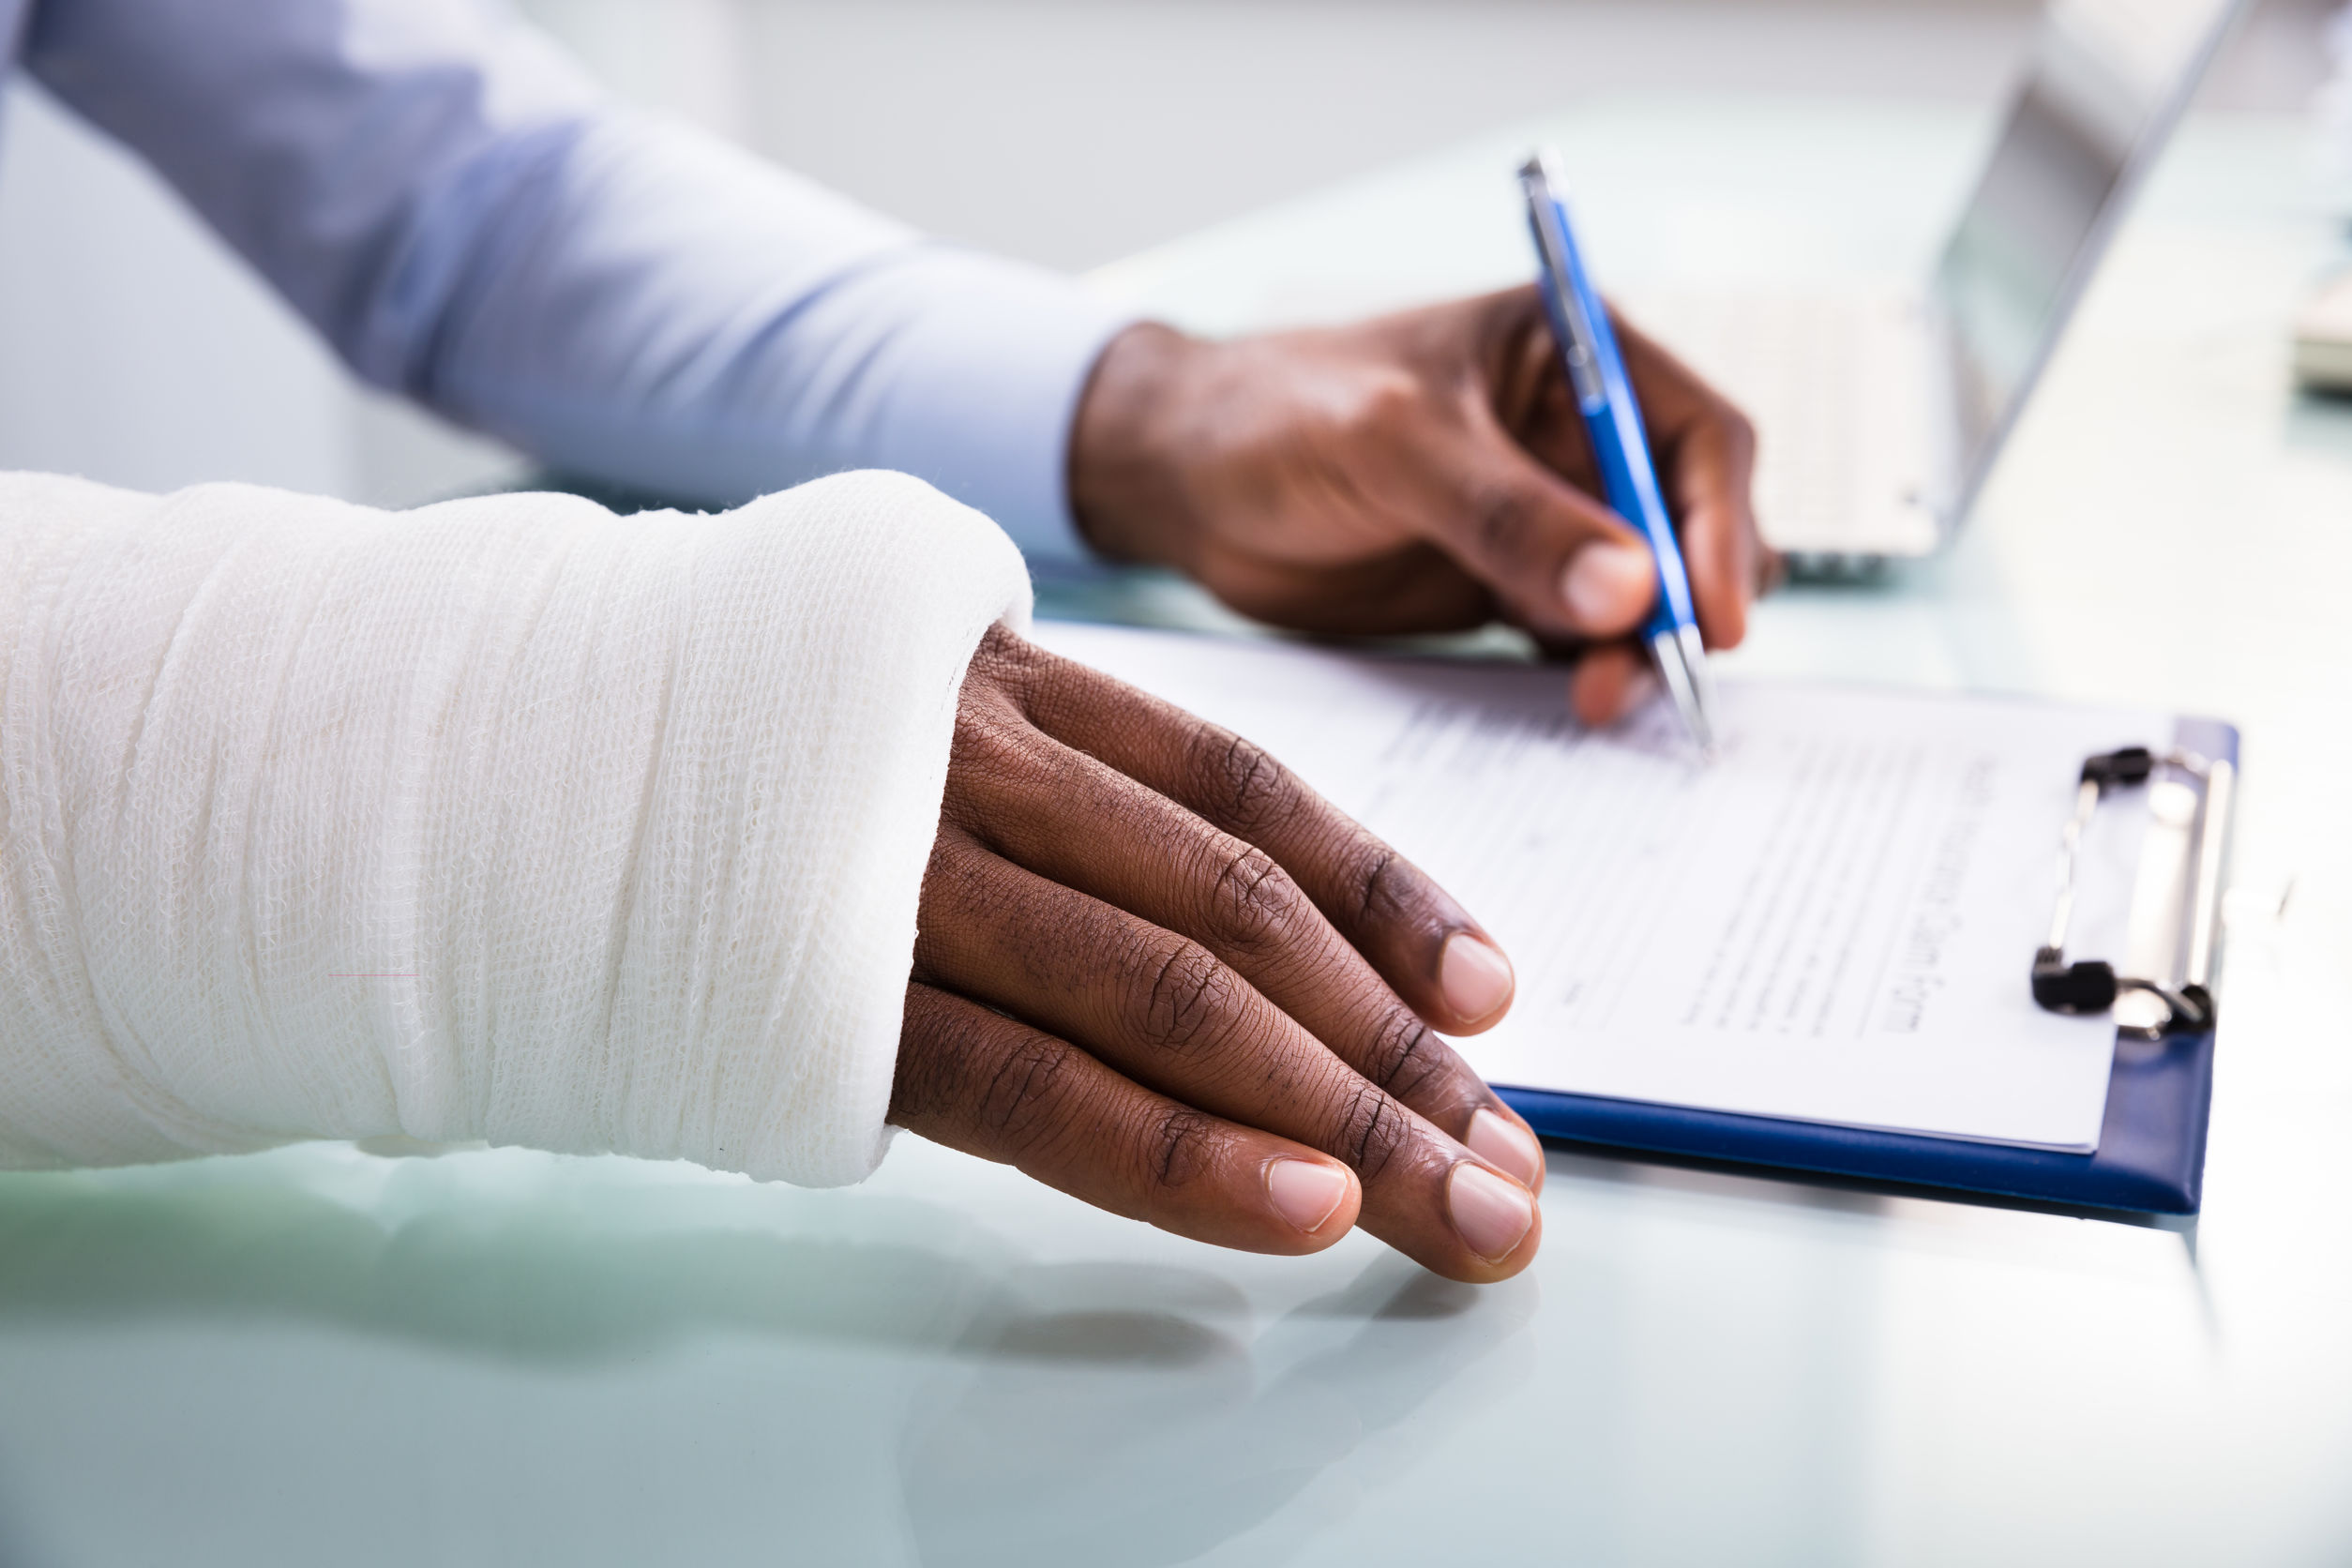 Overhead View Of Injured Man With Bandage Hand Filling Insurance Claim Form On Clipboard